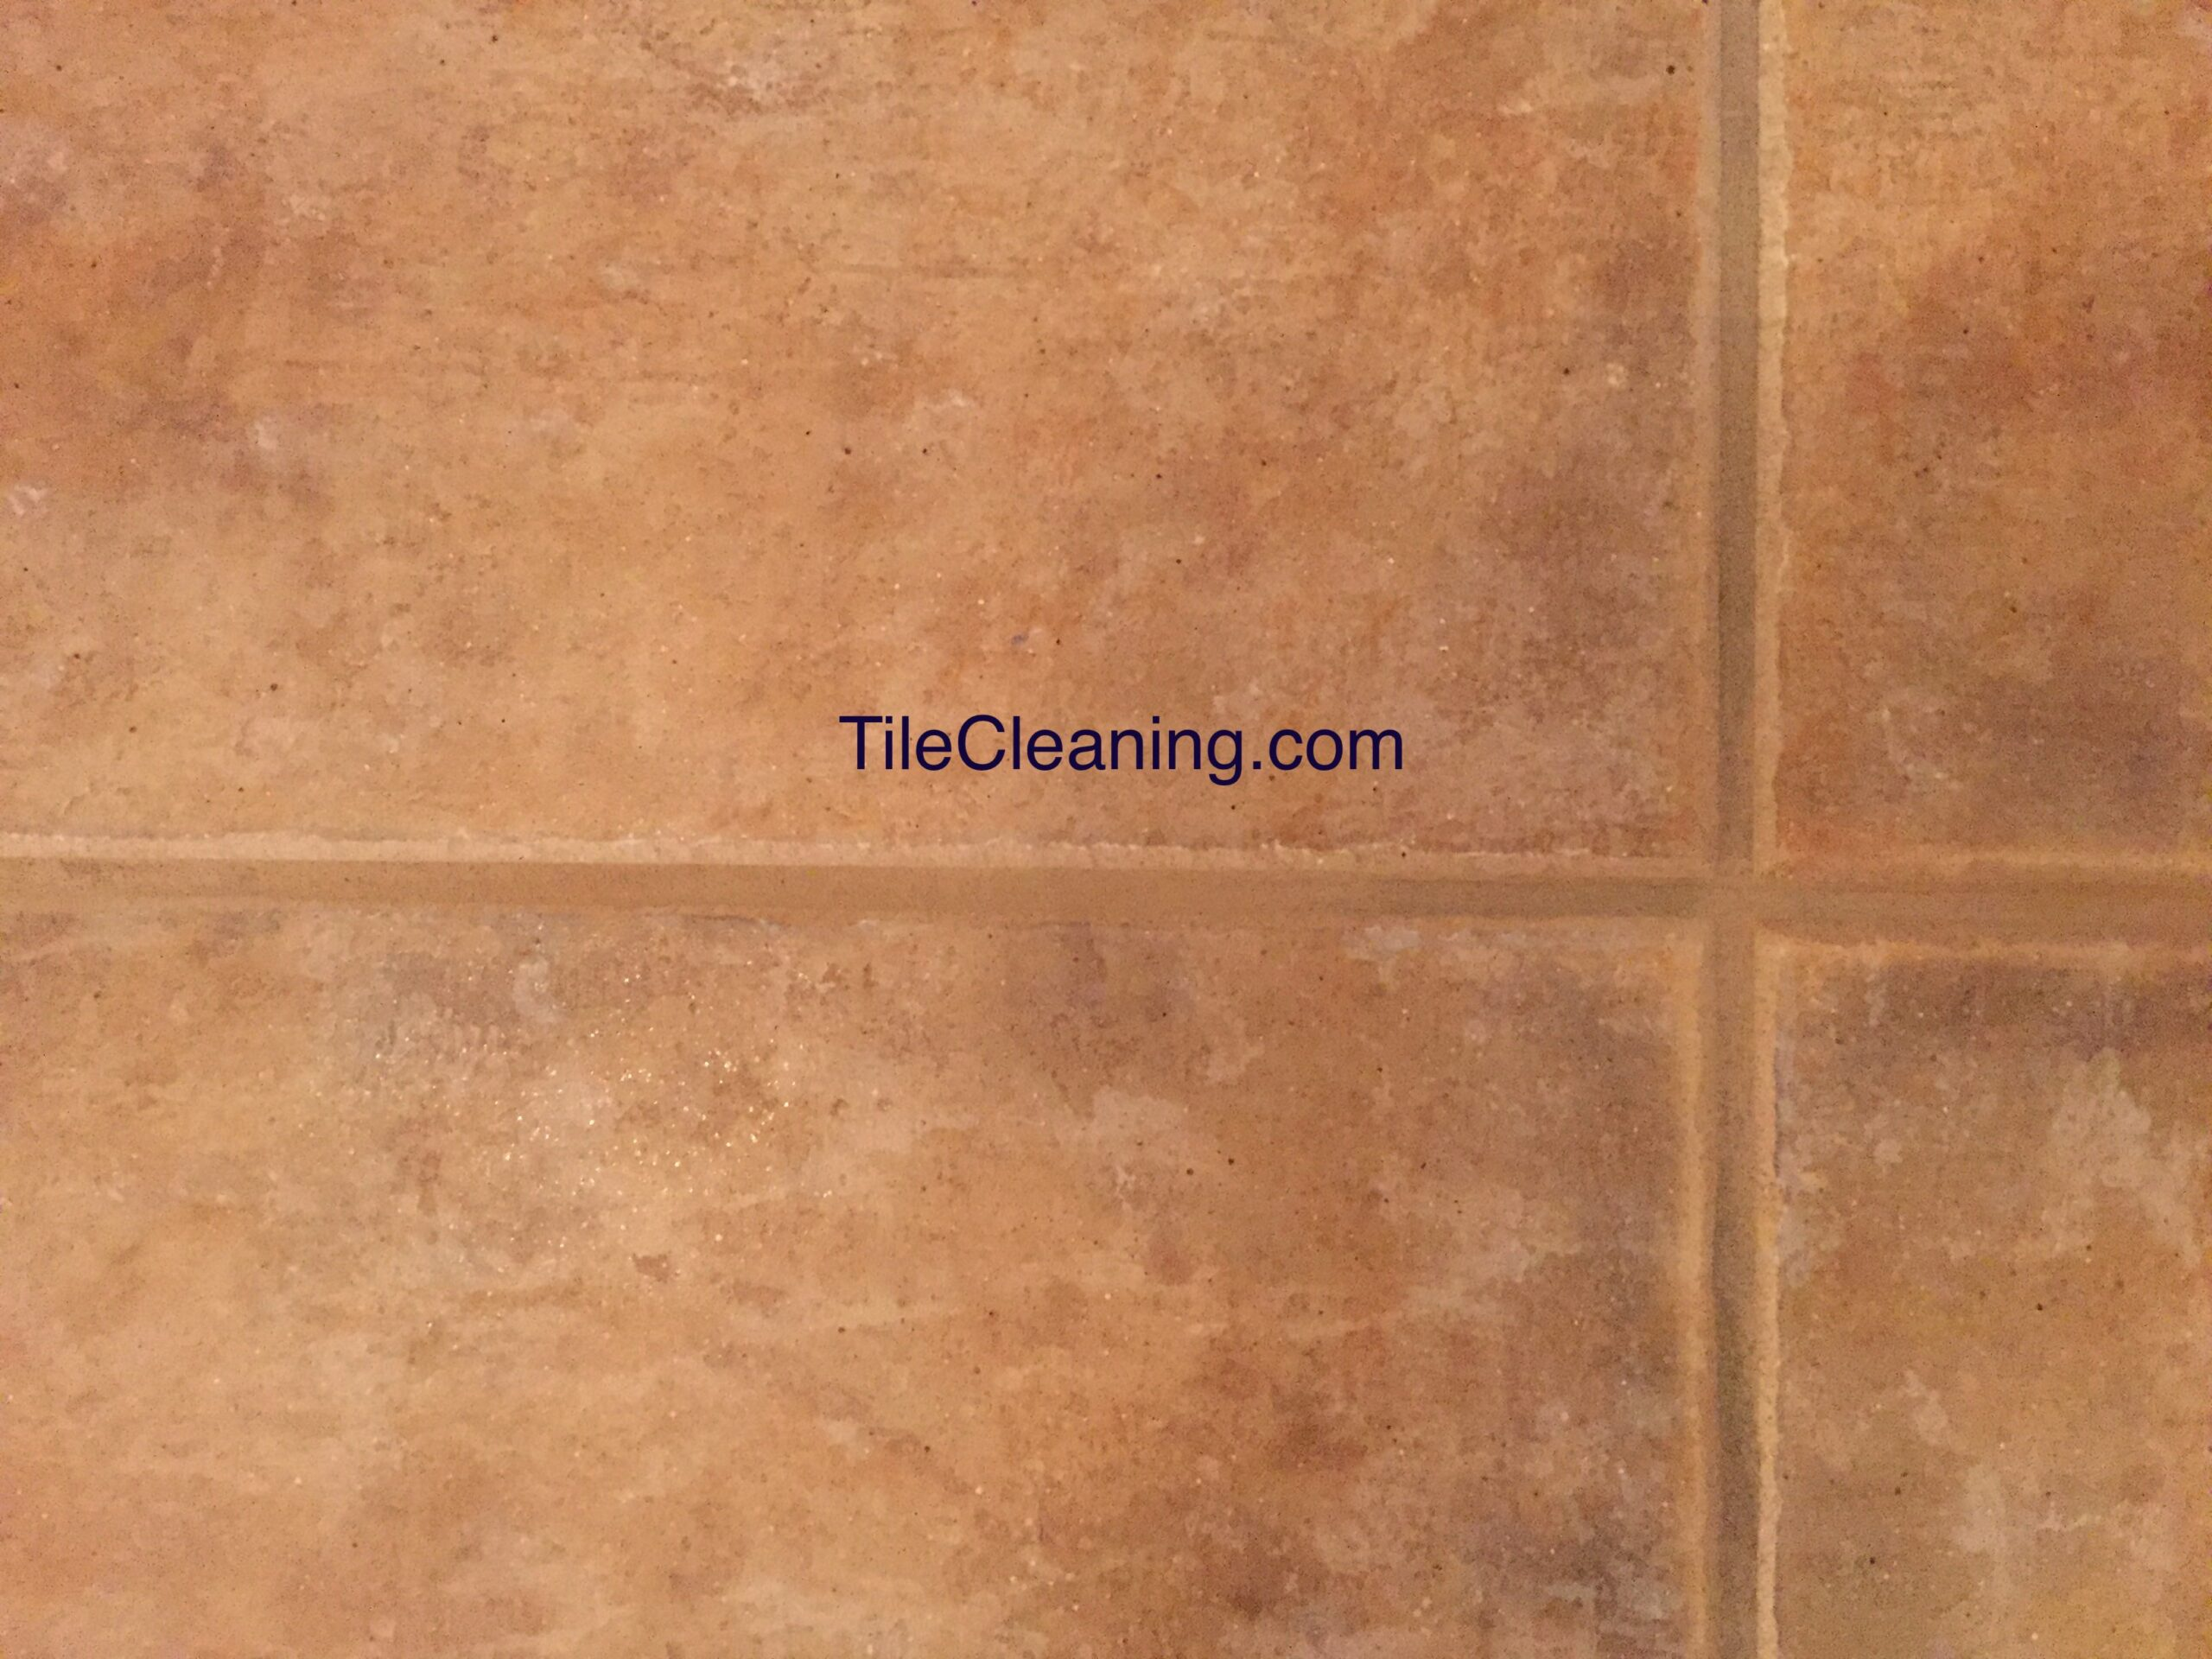 Grout Crack After Repair